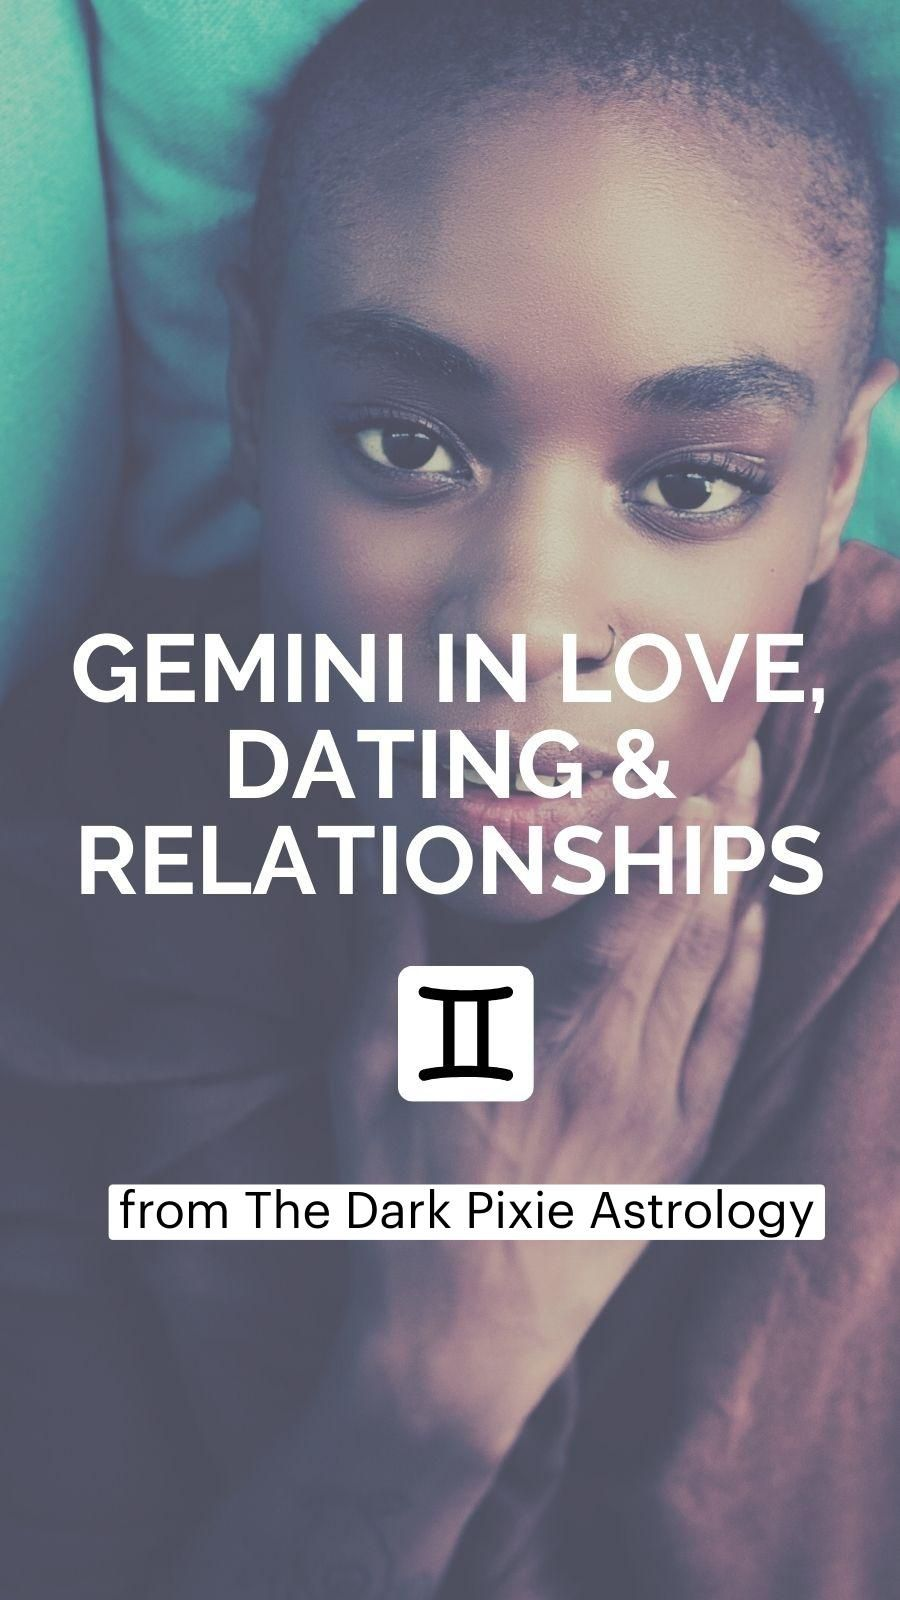 Gemini in Love, Dating & Relationships - Astrology